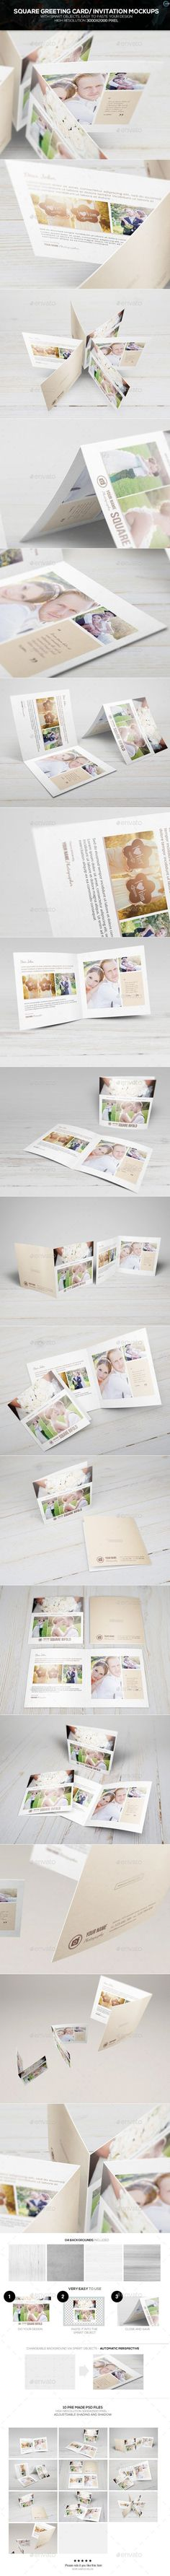 Square Greeting Card - Invitation Mockups - invitation design realistic #display #mockup